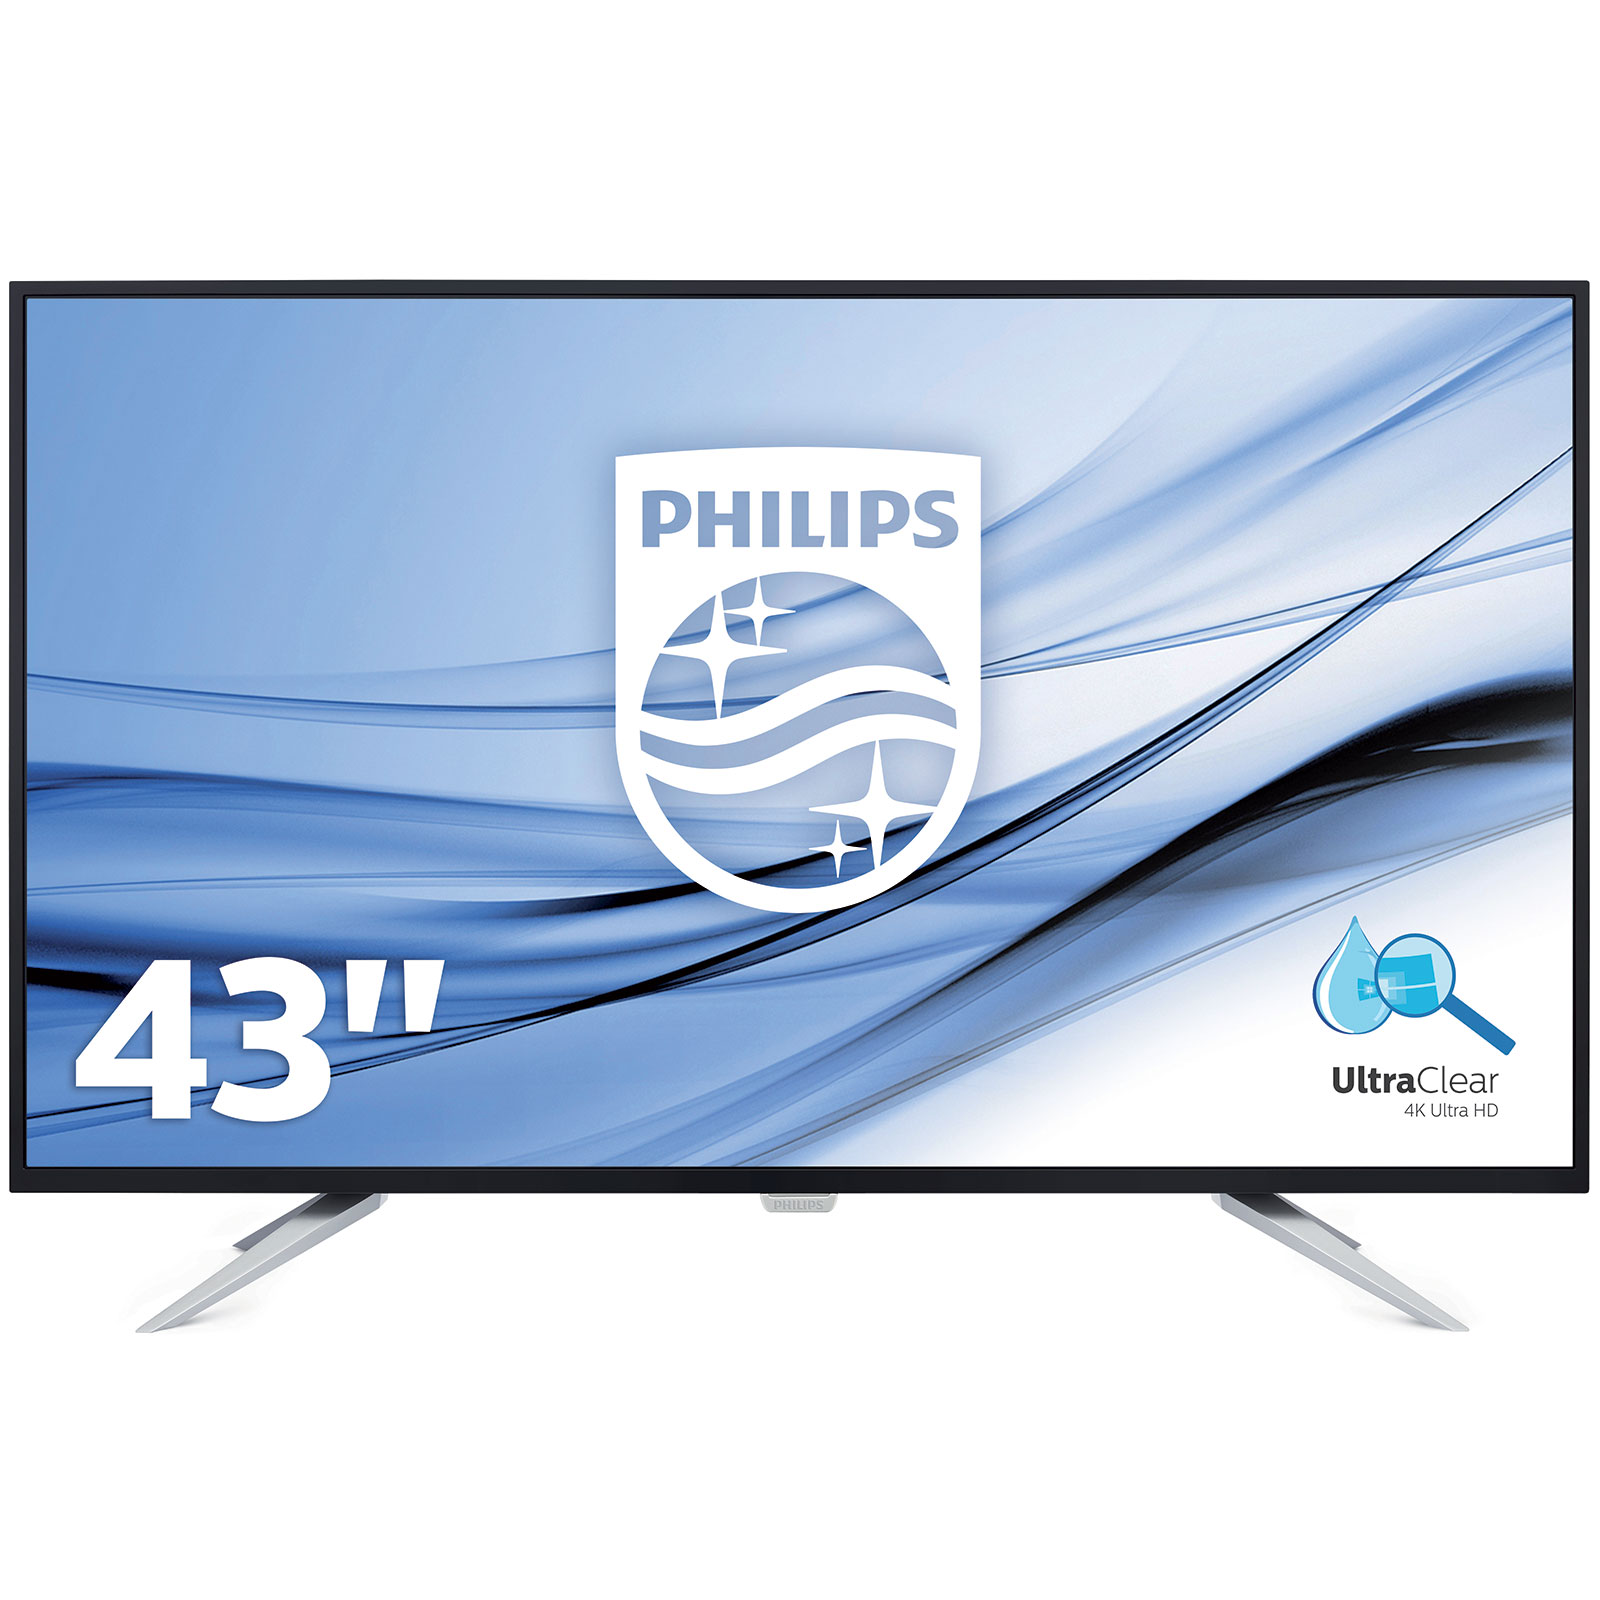 Philips 43 led bdm4350uc ecran pc philips sur for Ecran dalle ips pour la photo